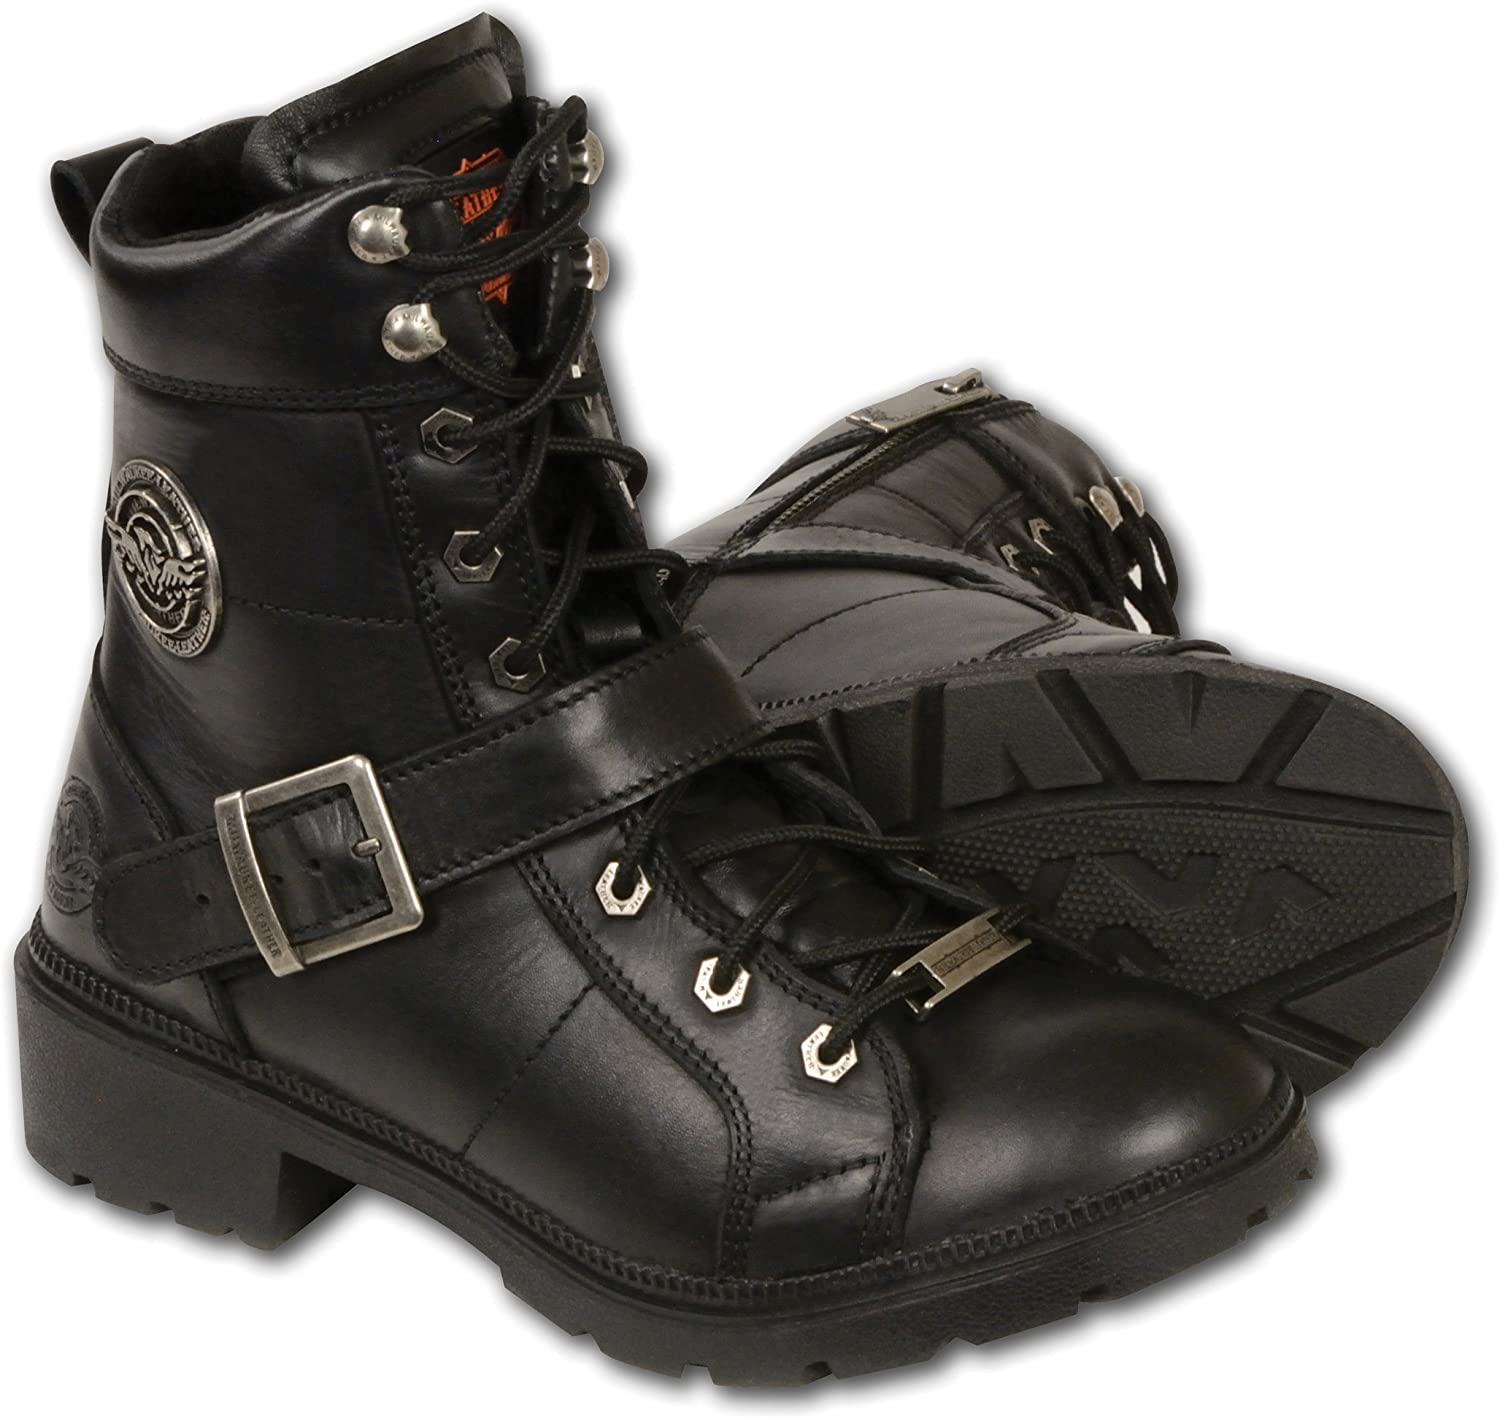 Black, Size 8 Milwaukee Womens Boots with Lace Front and Zip Closure